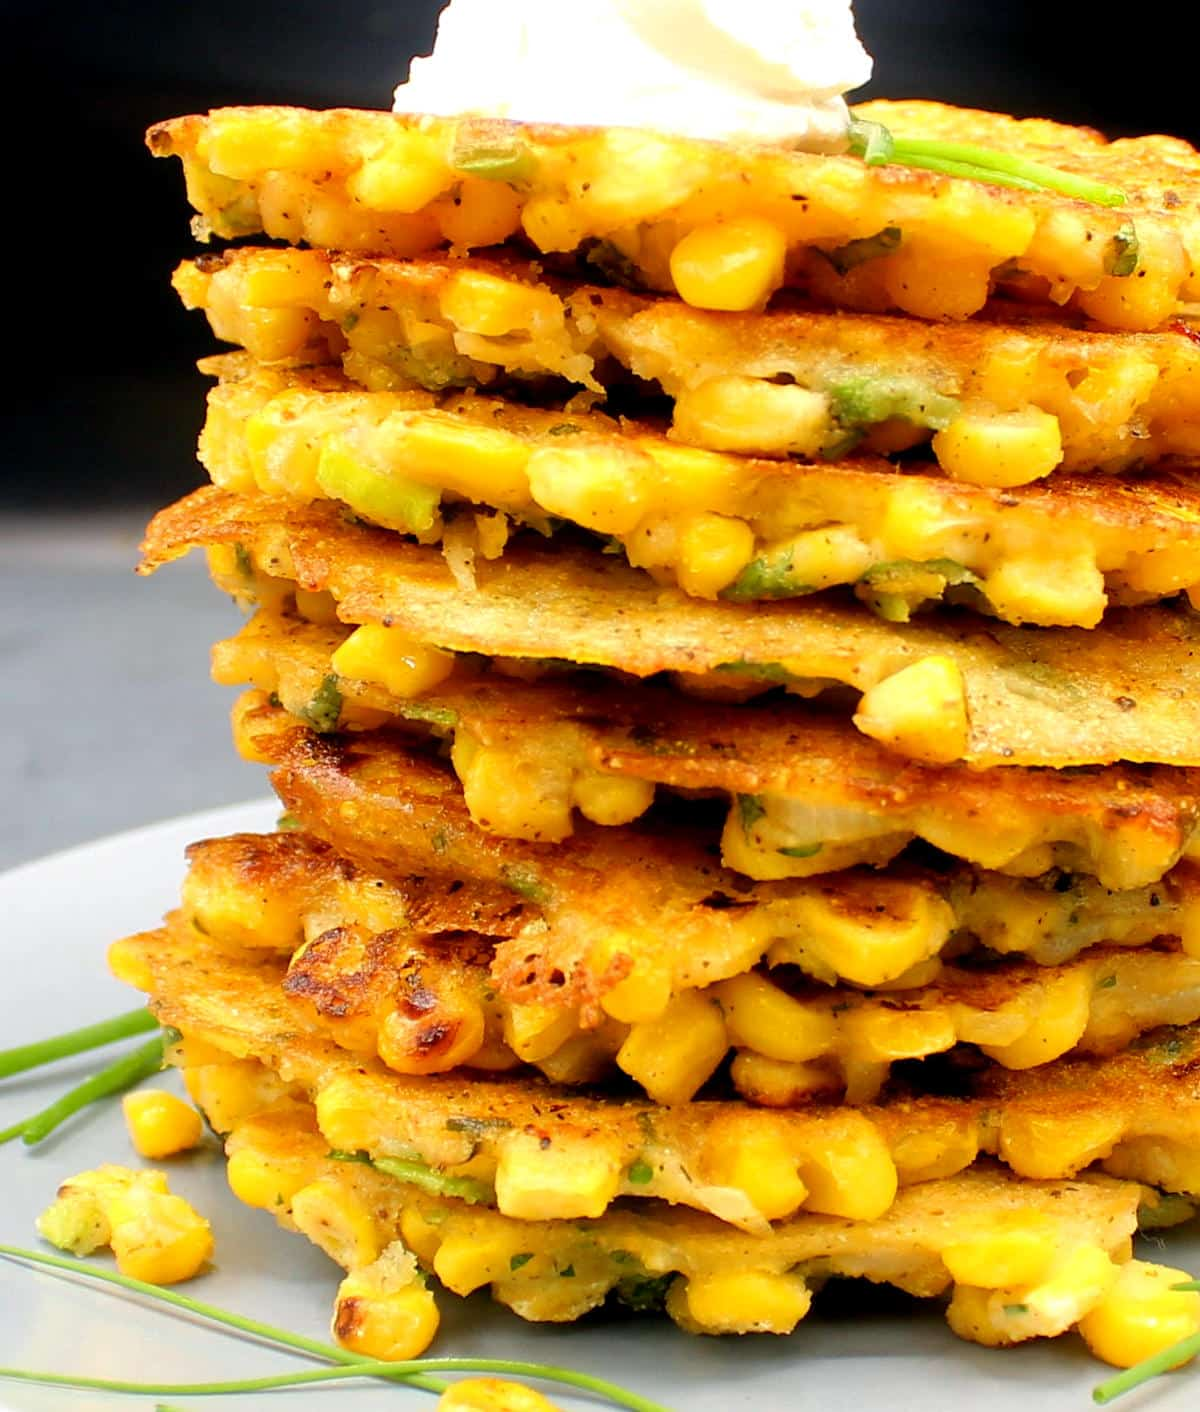 Closeup photo of a stack of vegan corn fritters on a gray plate with vegan cream cheese and chives